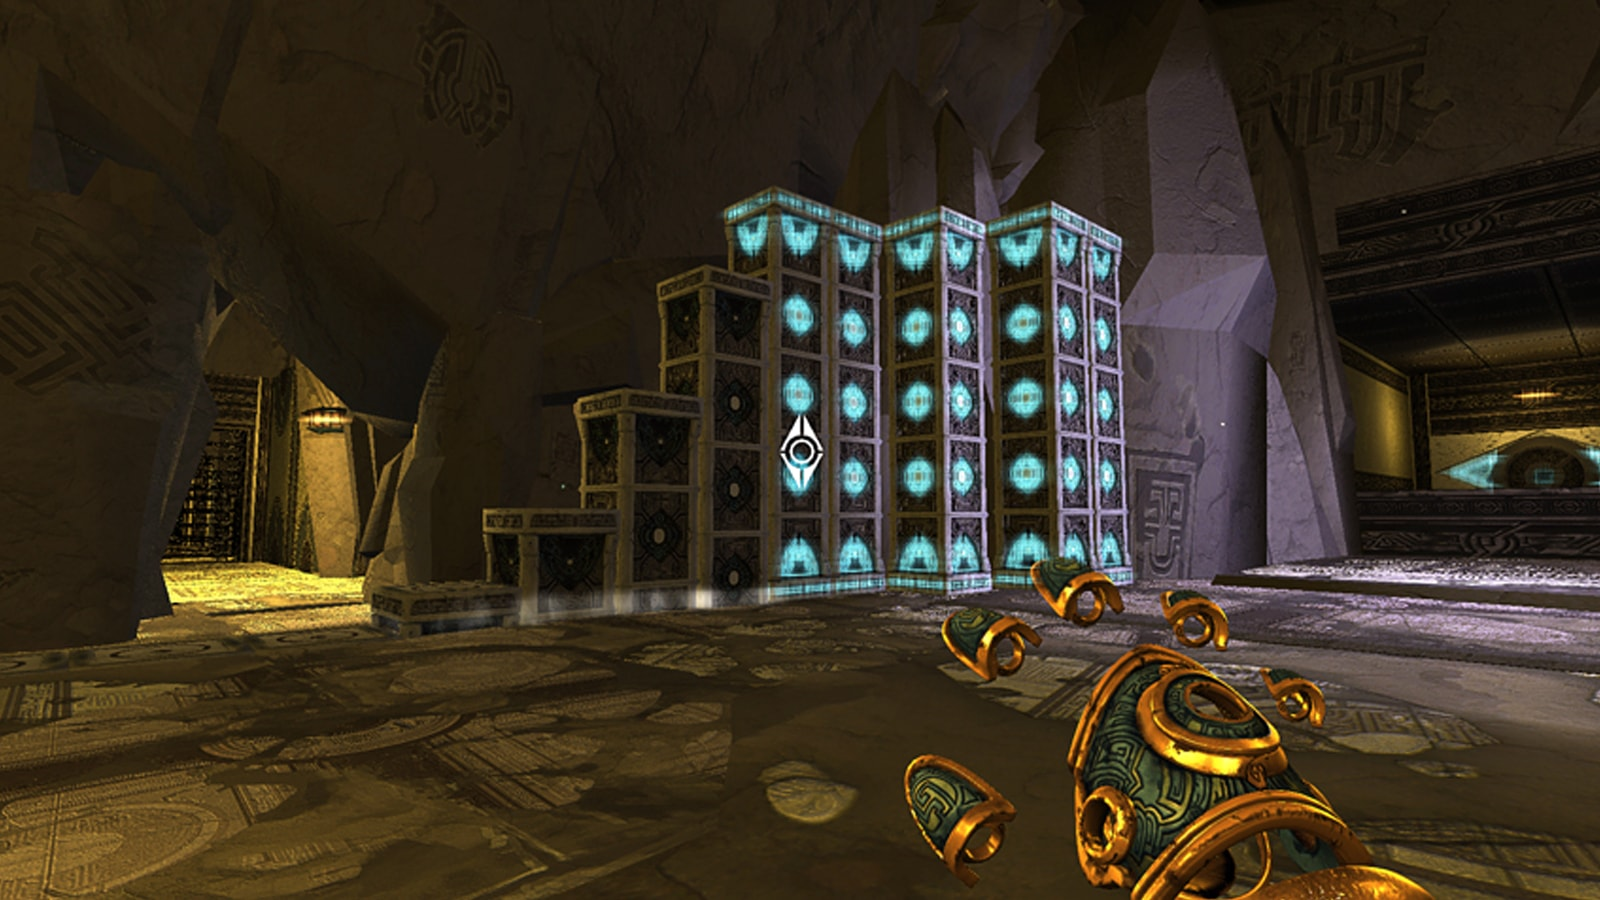 A disembodied metallic hand hovers over a series of glowing columns in a stone temple.